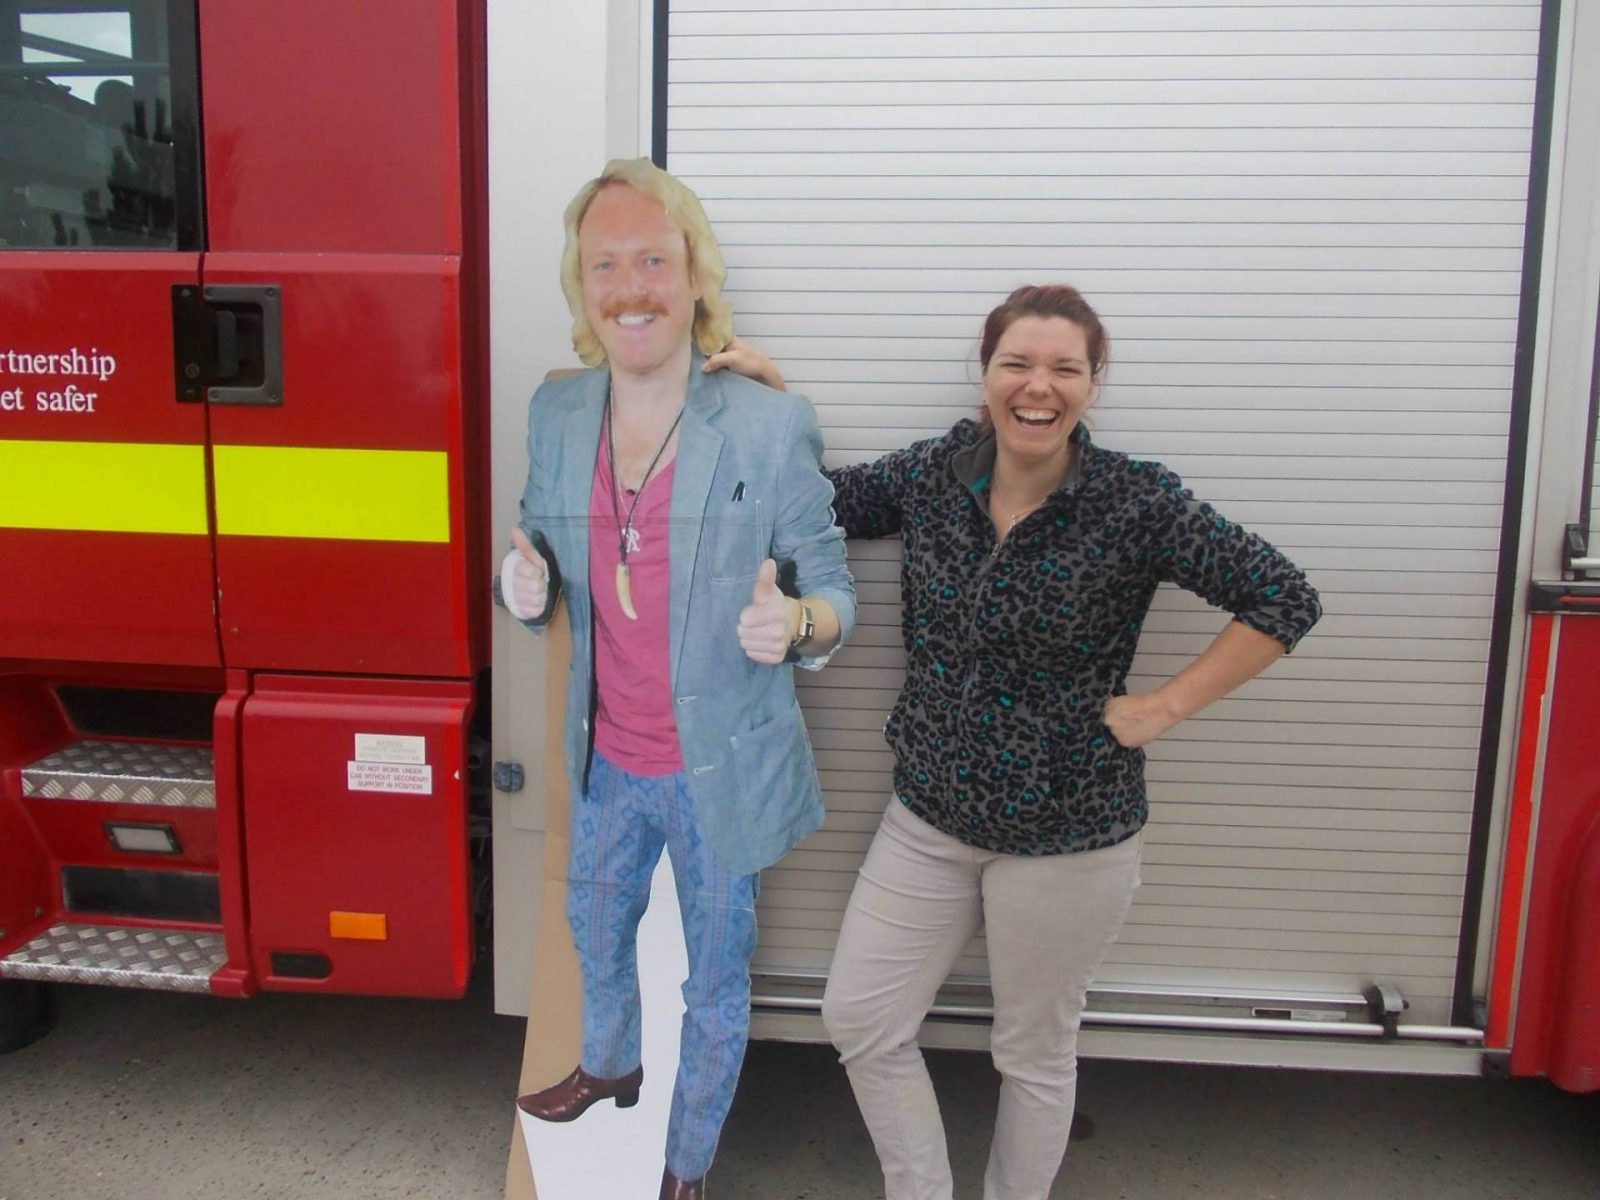 Keith Lemon and Joanne dewberry